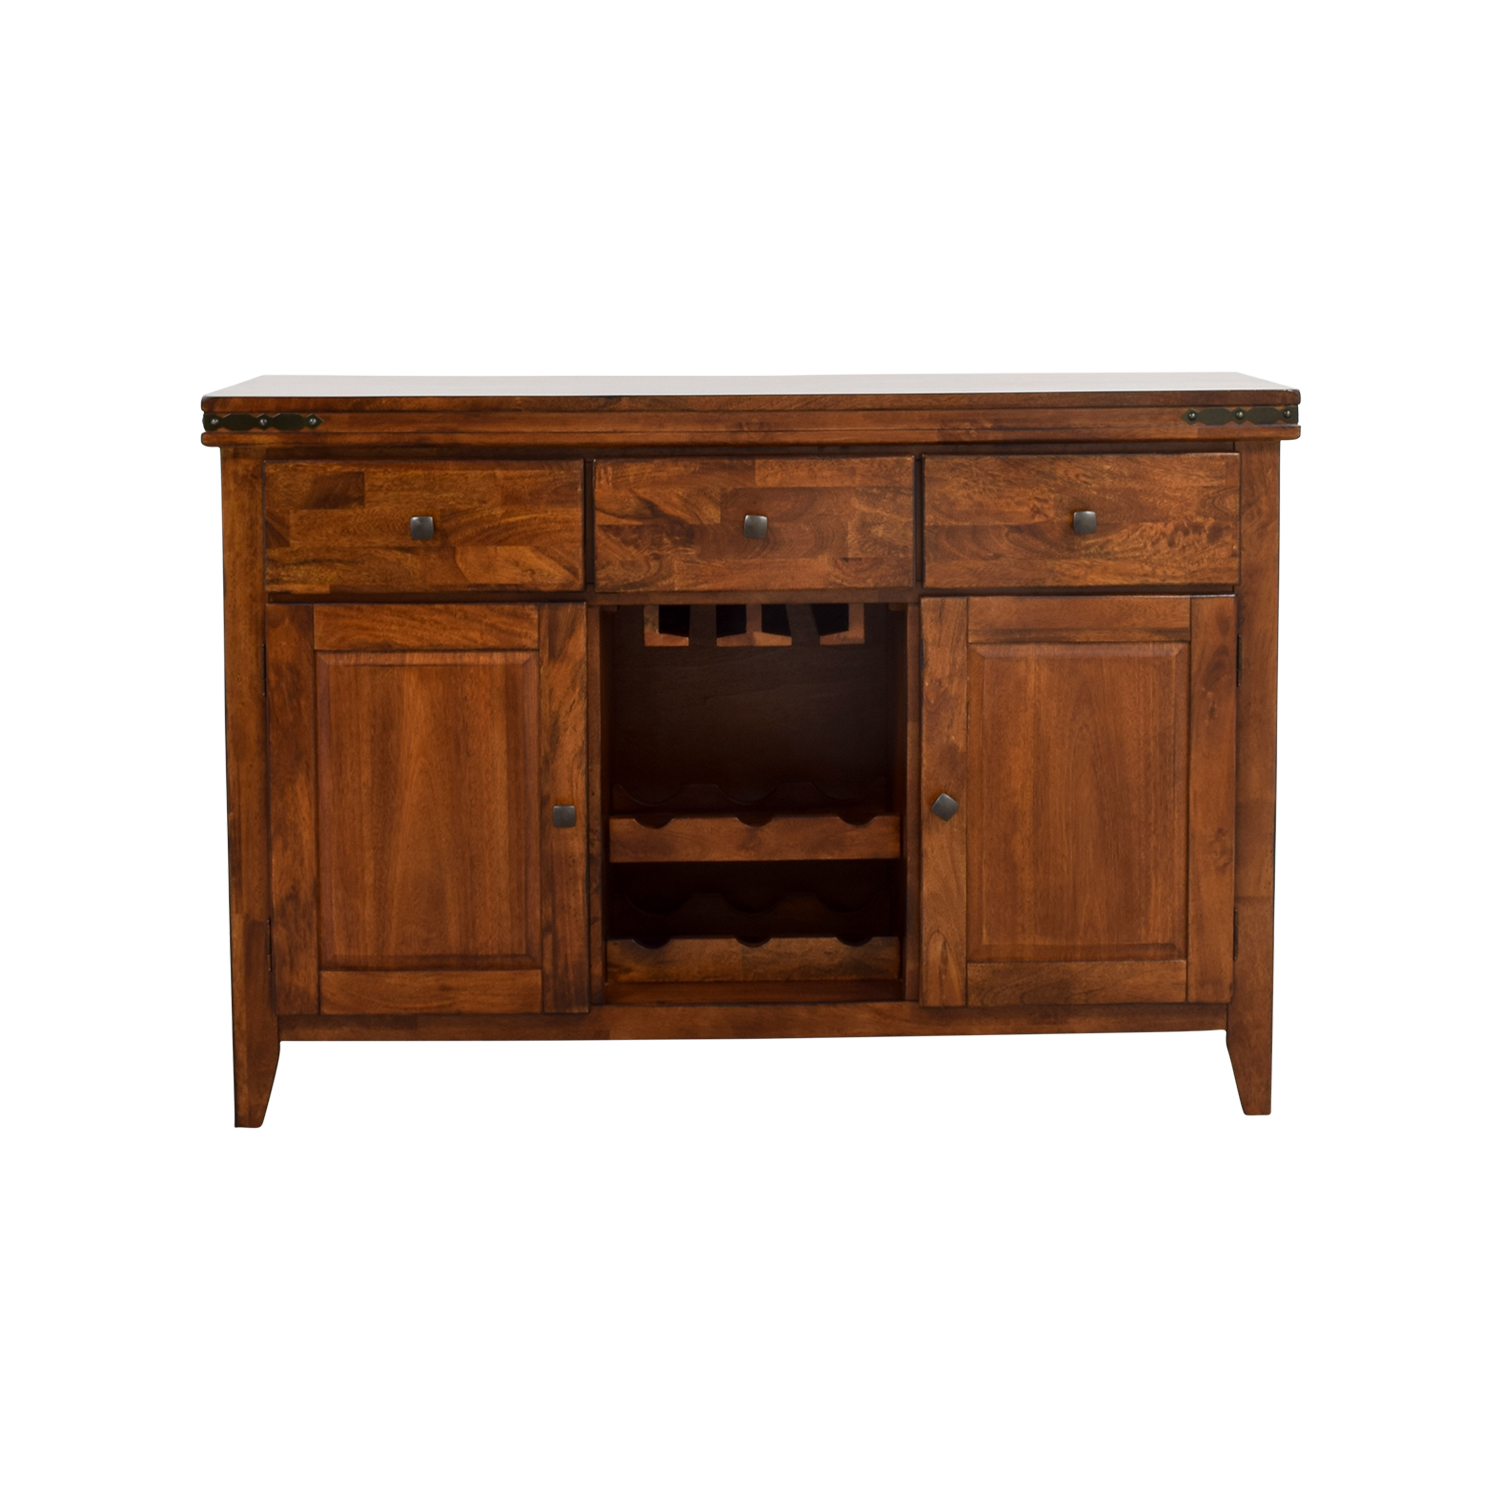 Bobs Furniture Bar Table or Sideboard / Storage